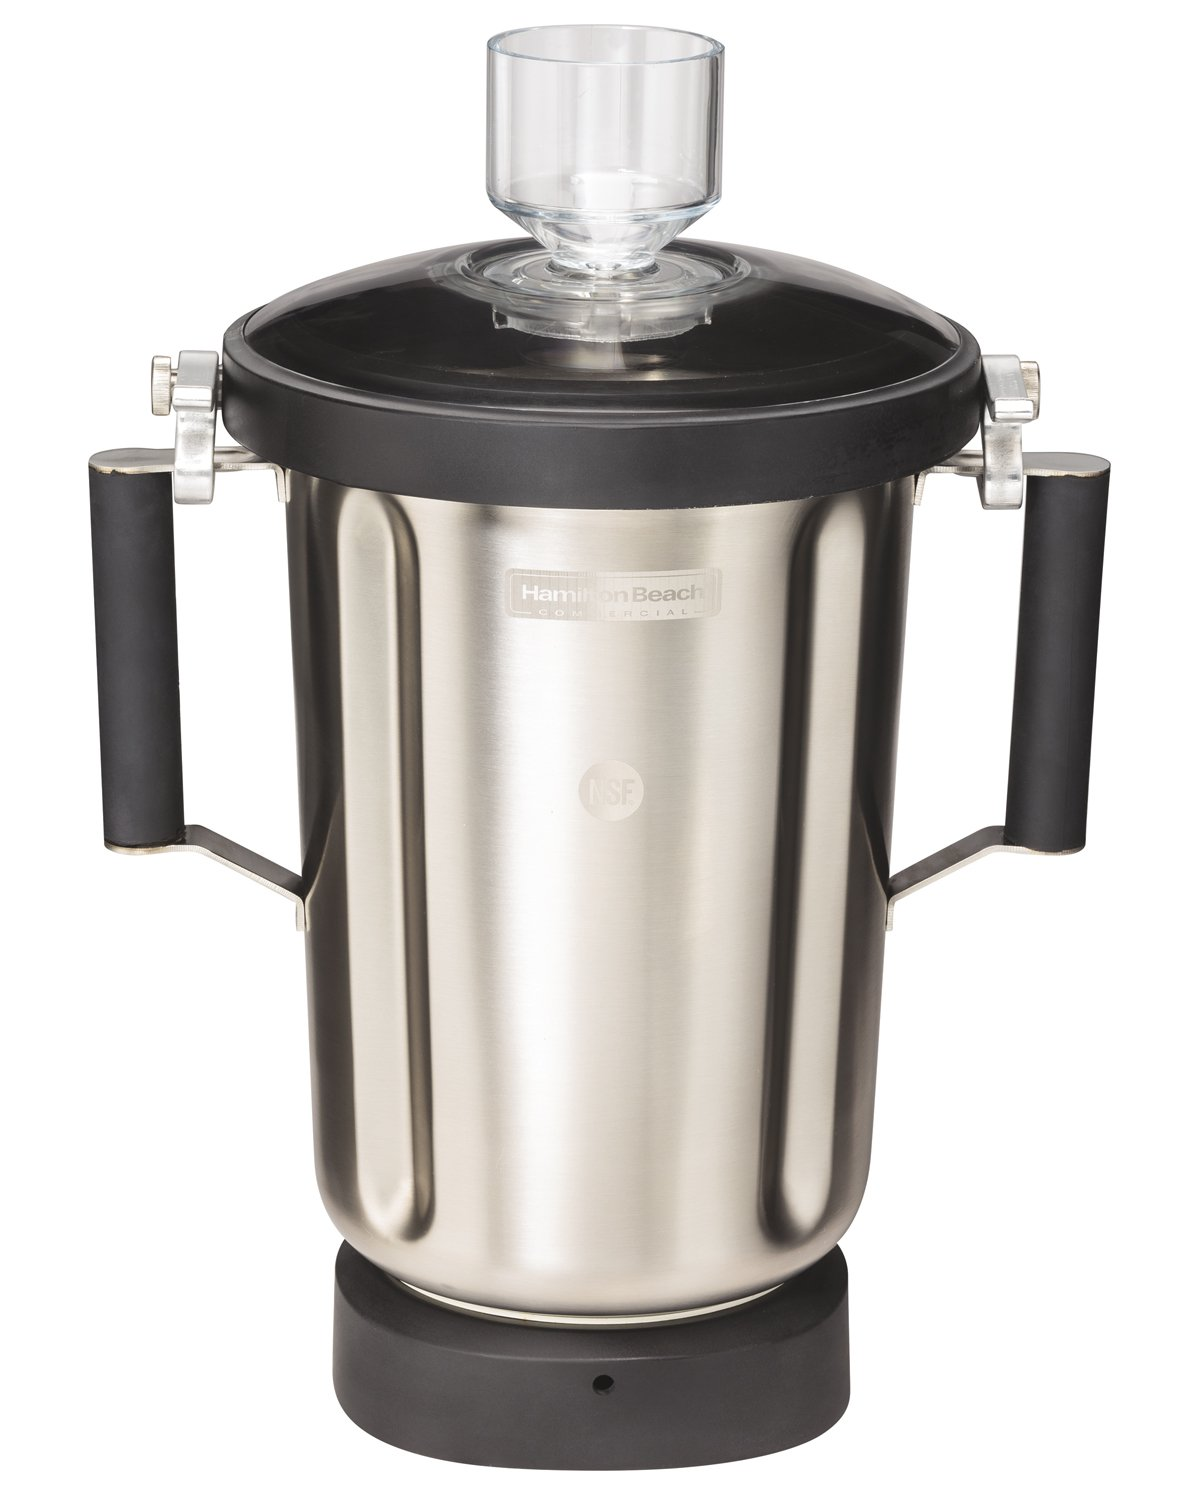 """Hamilton Beach Commercial 6126-1100S HBF1100S 1 gal/4 L Container, 6"""" L, 7.5"""" W, 12"""" H, Stainless Steel"""